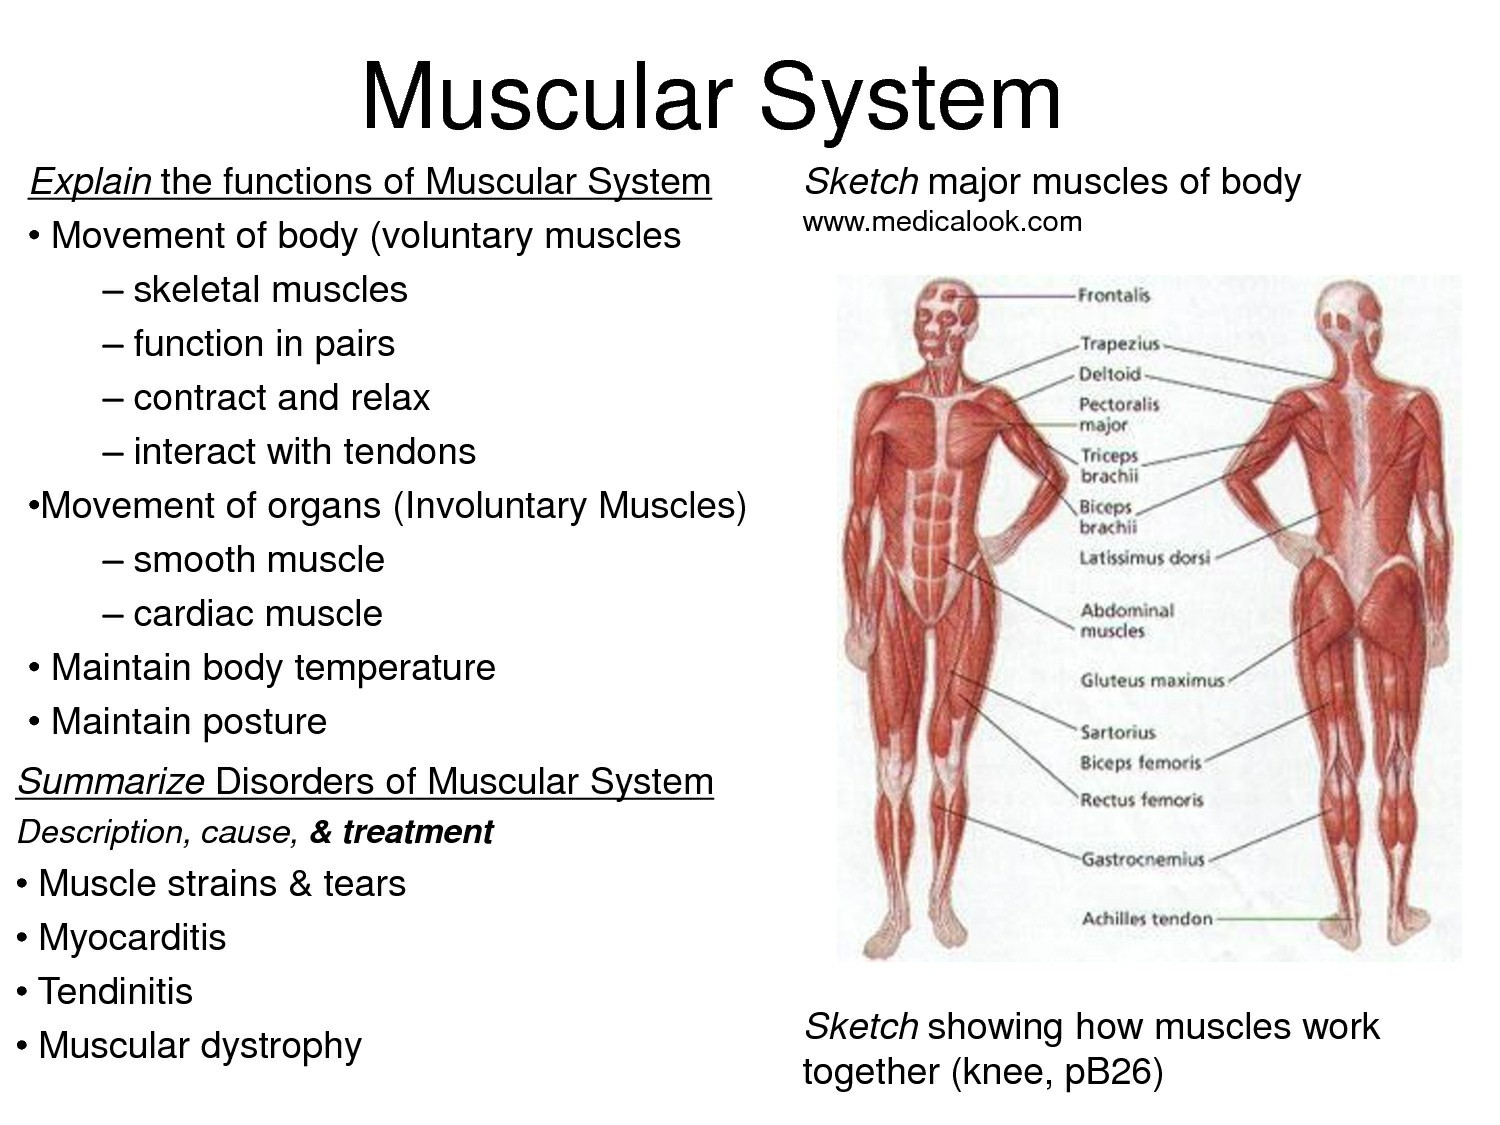 Muscular System Structure And Function Muscular System Facts | Anatomy | Pinterest | Muscular System And Pictures Wallpapers